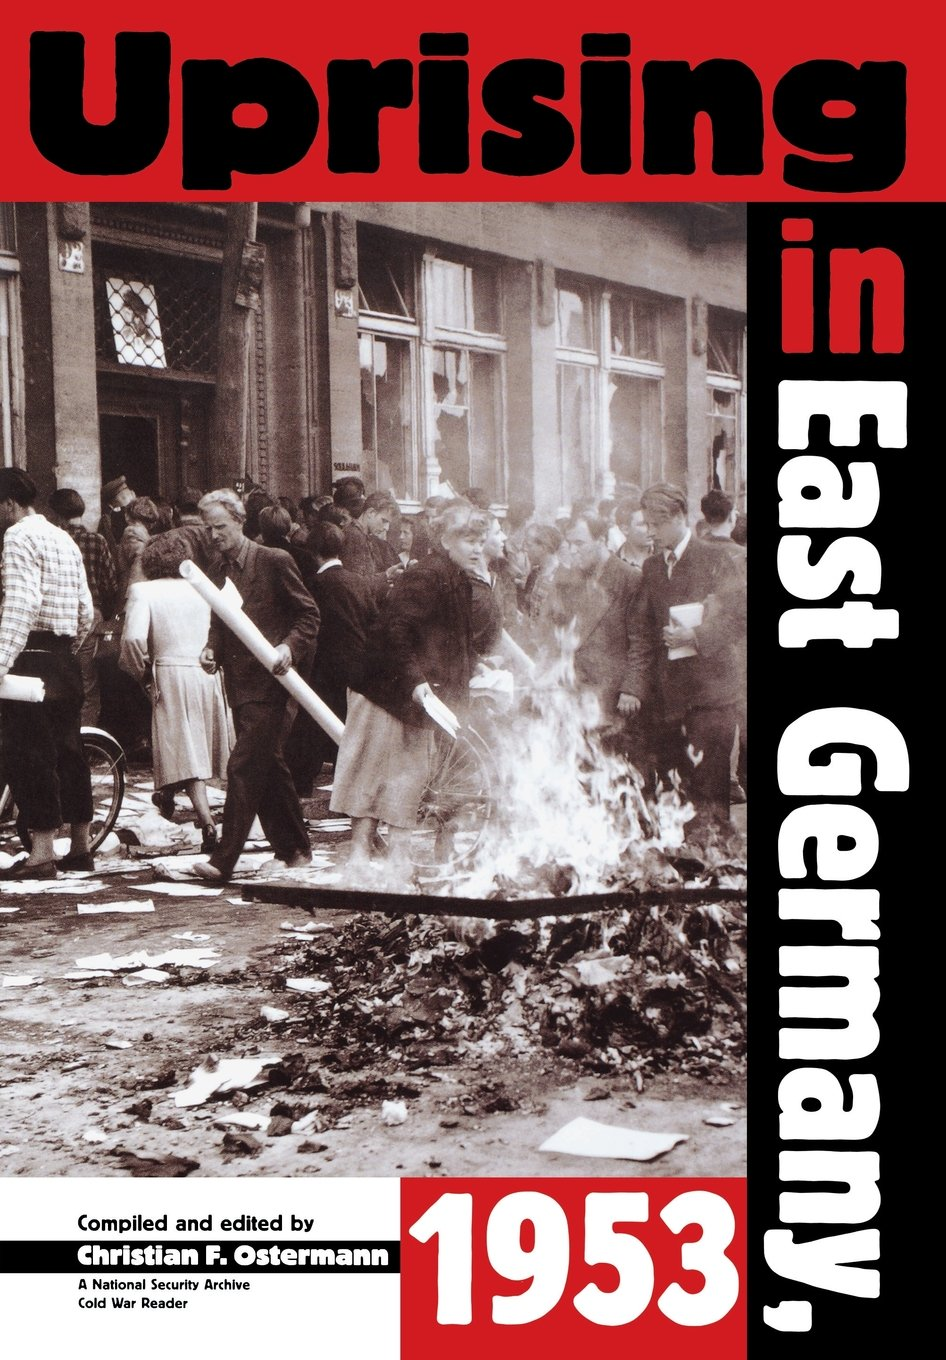 Download Uprising In East Germany 1953: The Cold War, the German Question, and the First Major Upheaval Behind the Iron Curtain (National Security Archive Cold War Readers) pdf epub